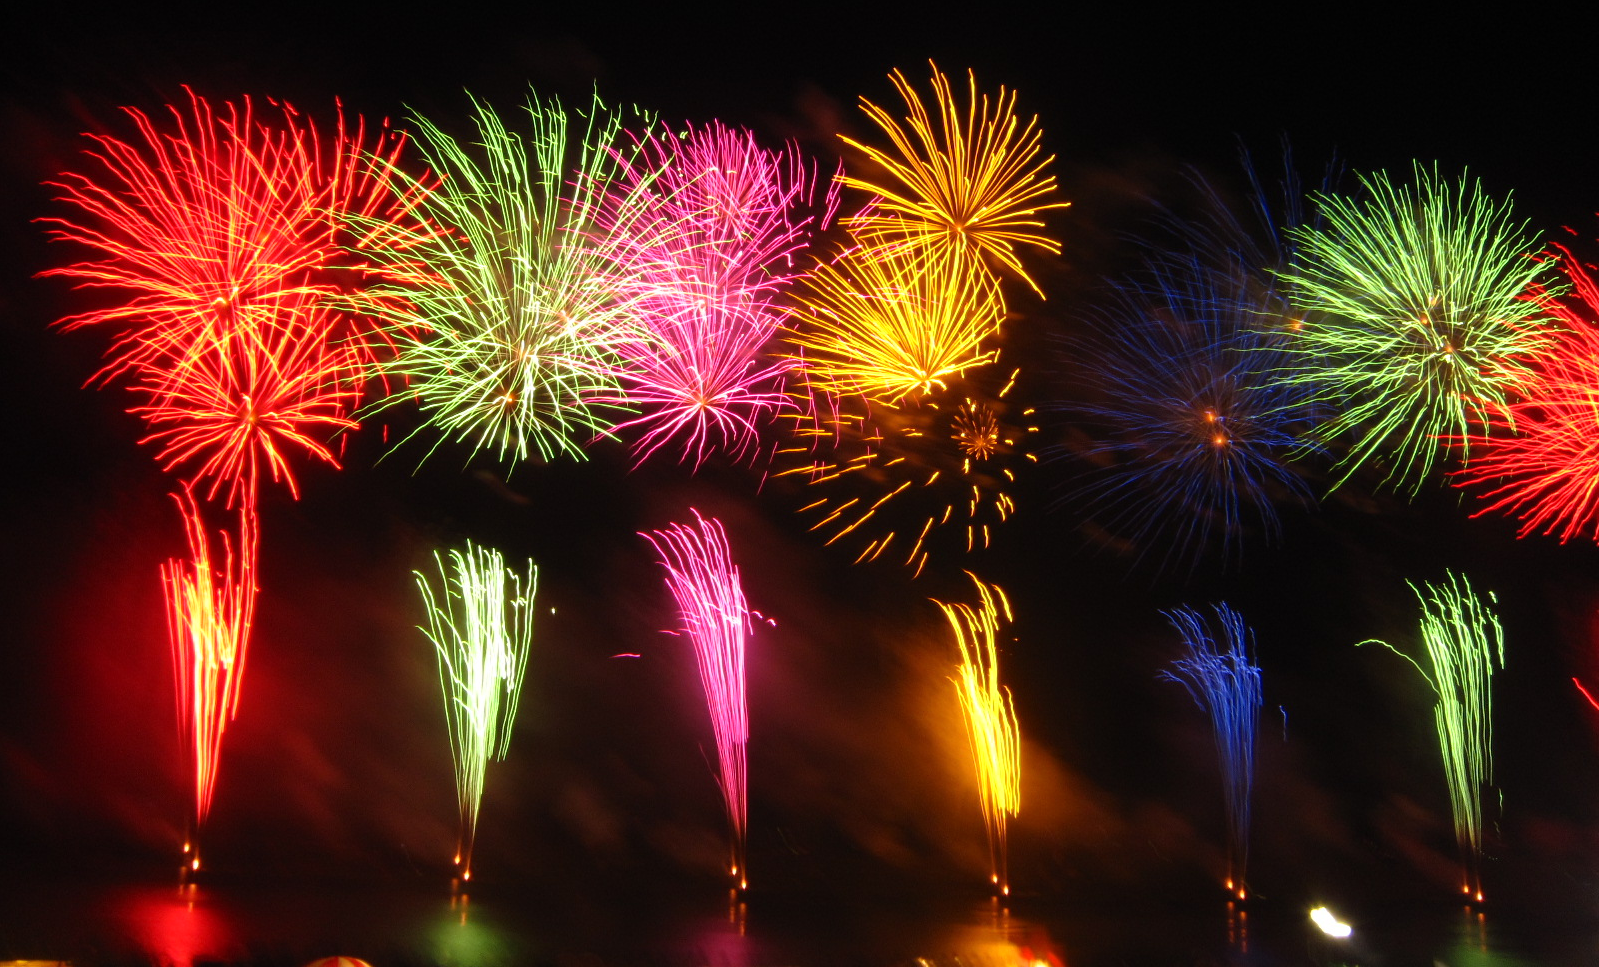 ColorfulFireworks